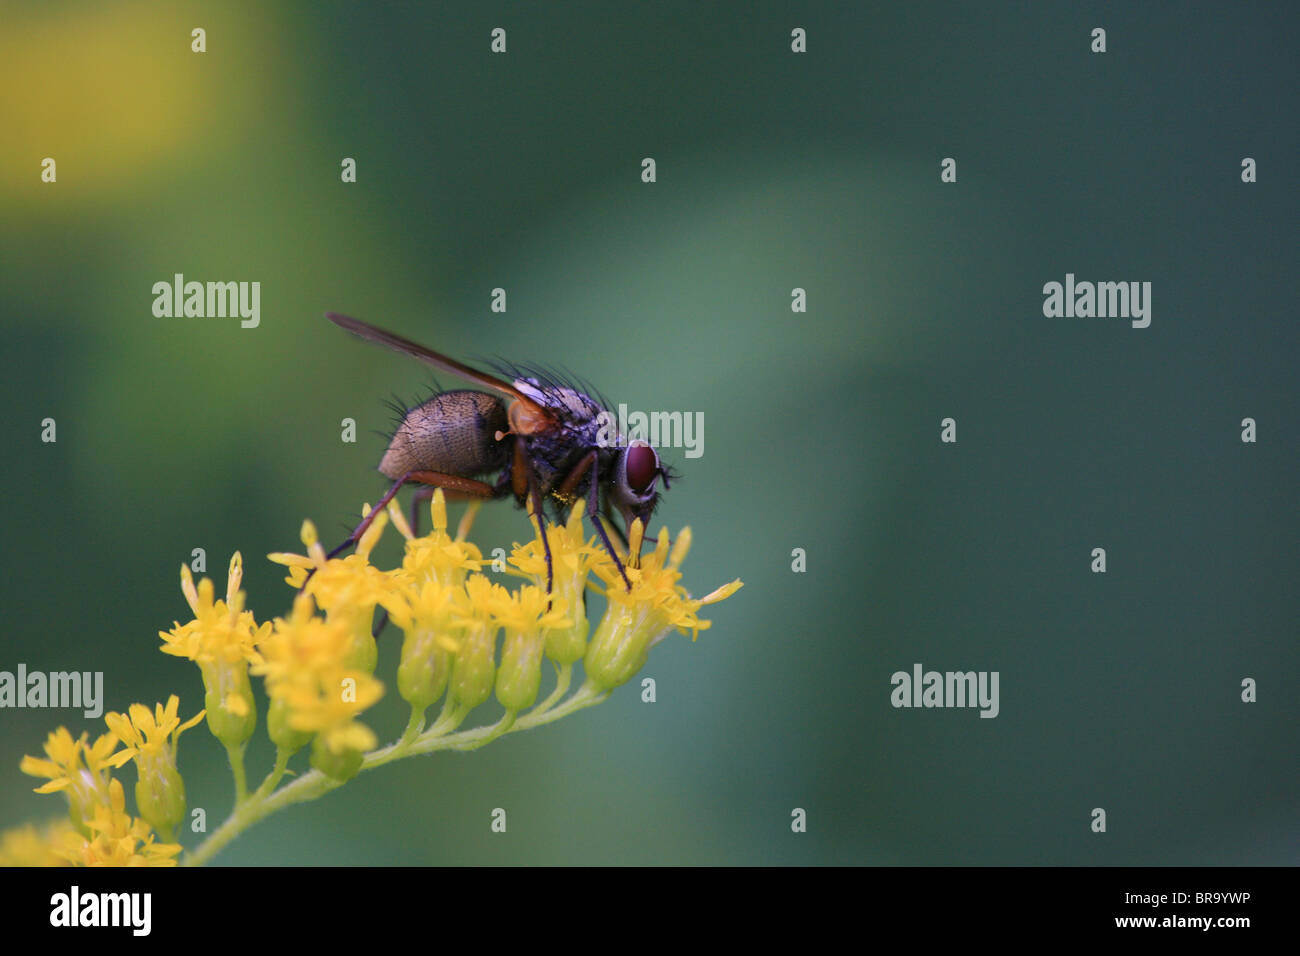 Fly on yellow flower at Evje in Rygge, Norway - Stock Image